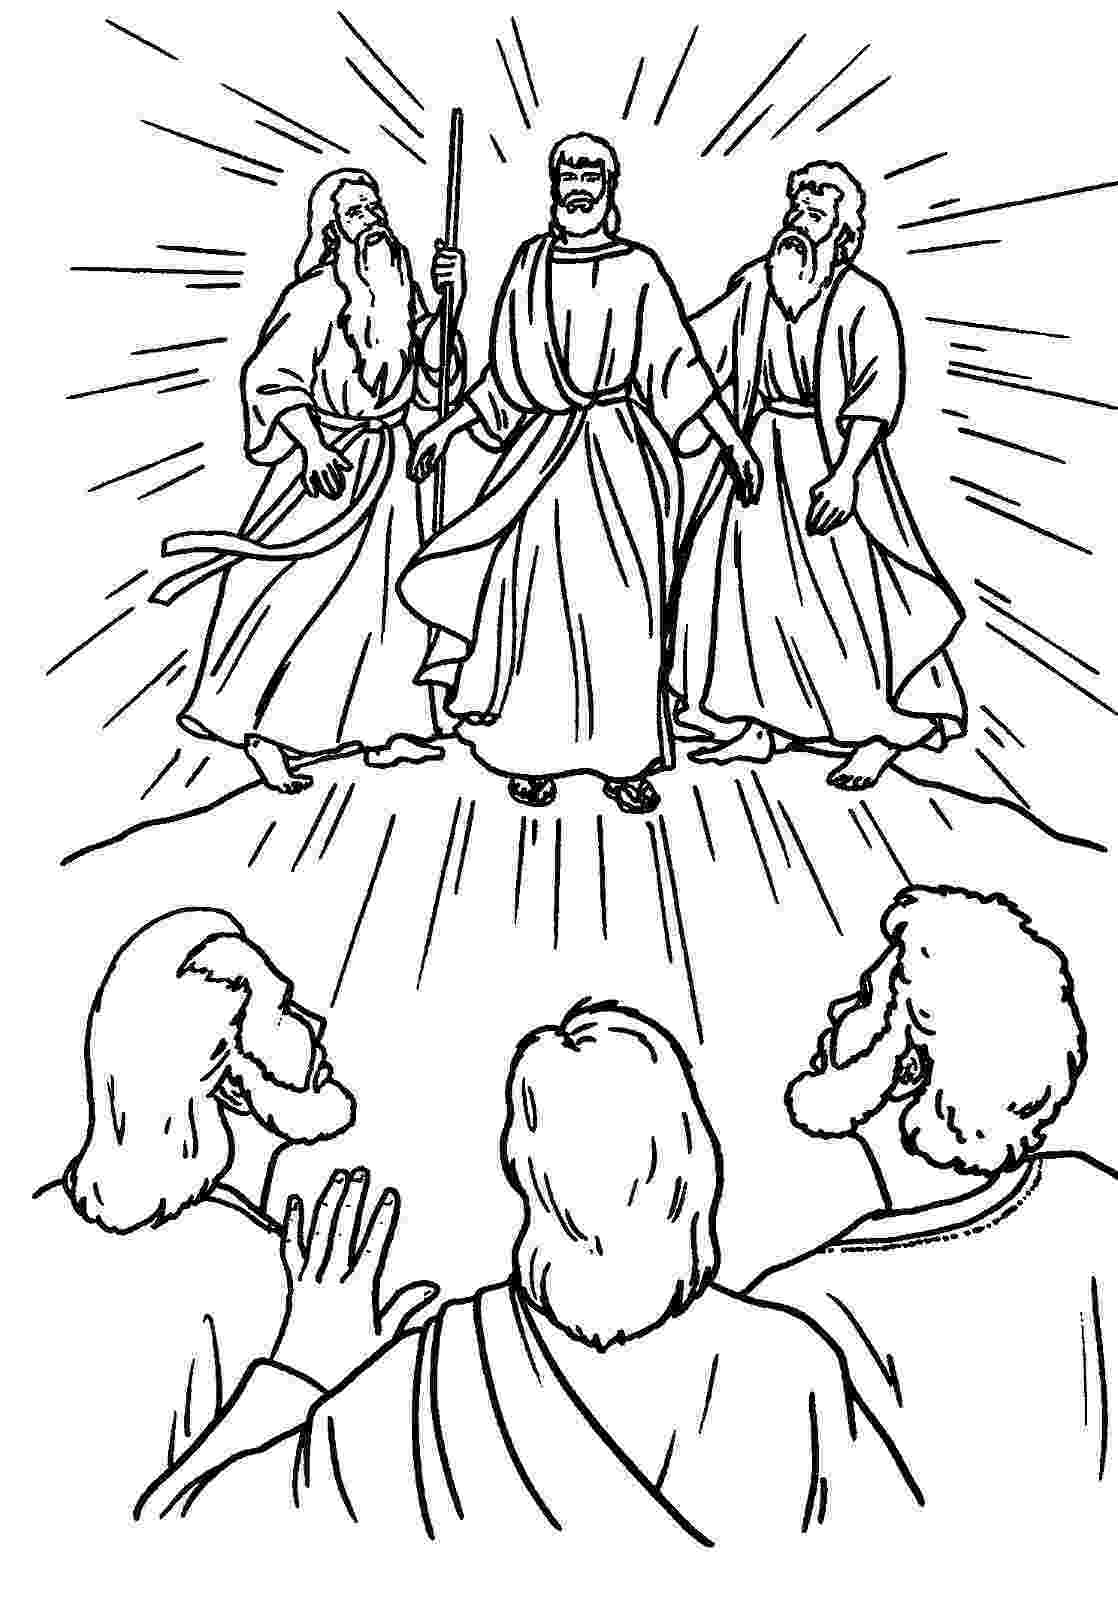 jesus transfiguration coloring page the transfiguration catholic coloring page sunday school transfiguration page jesus coloring